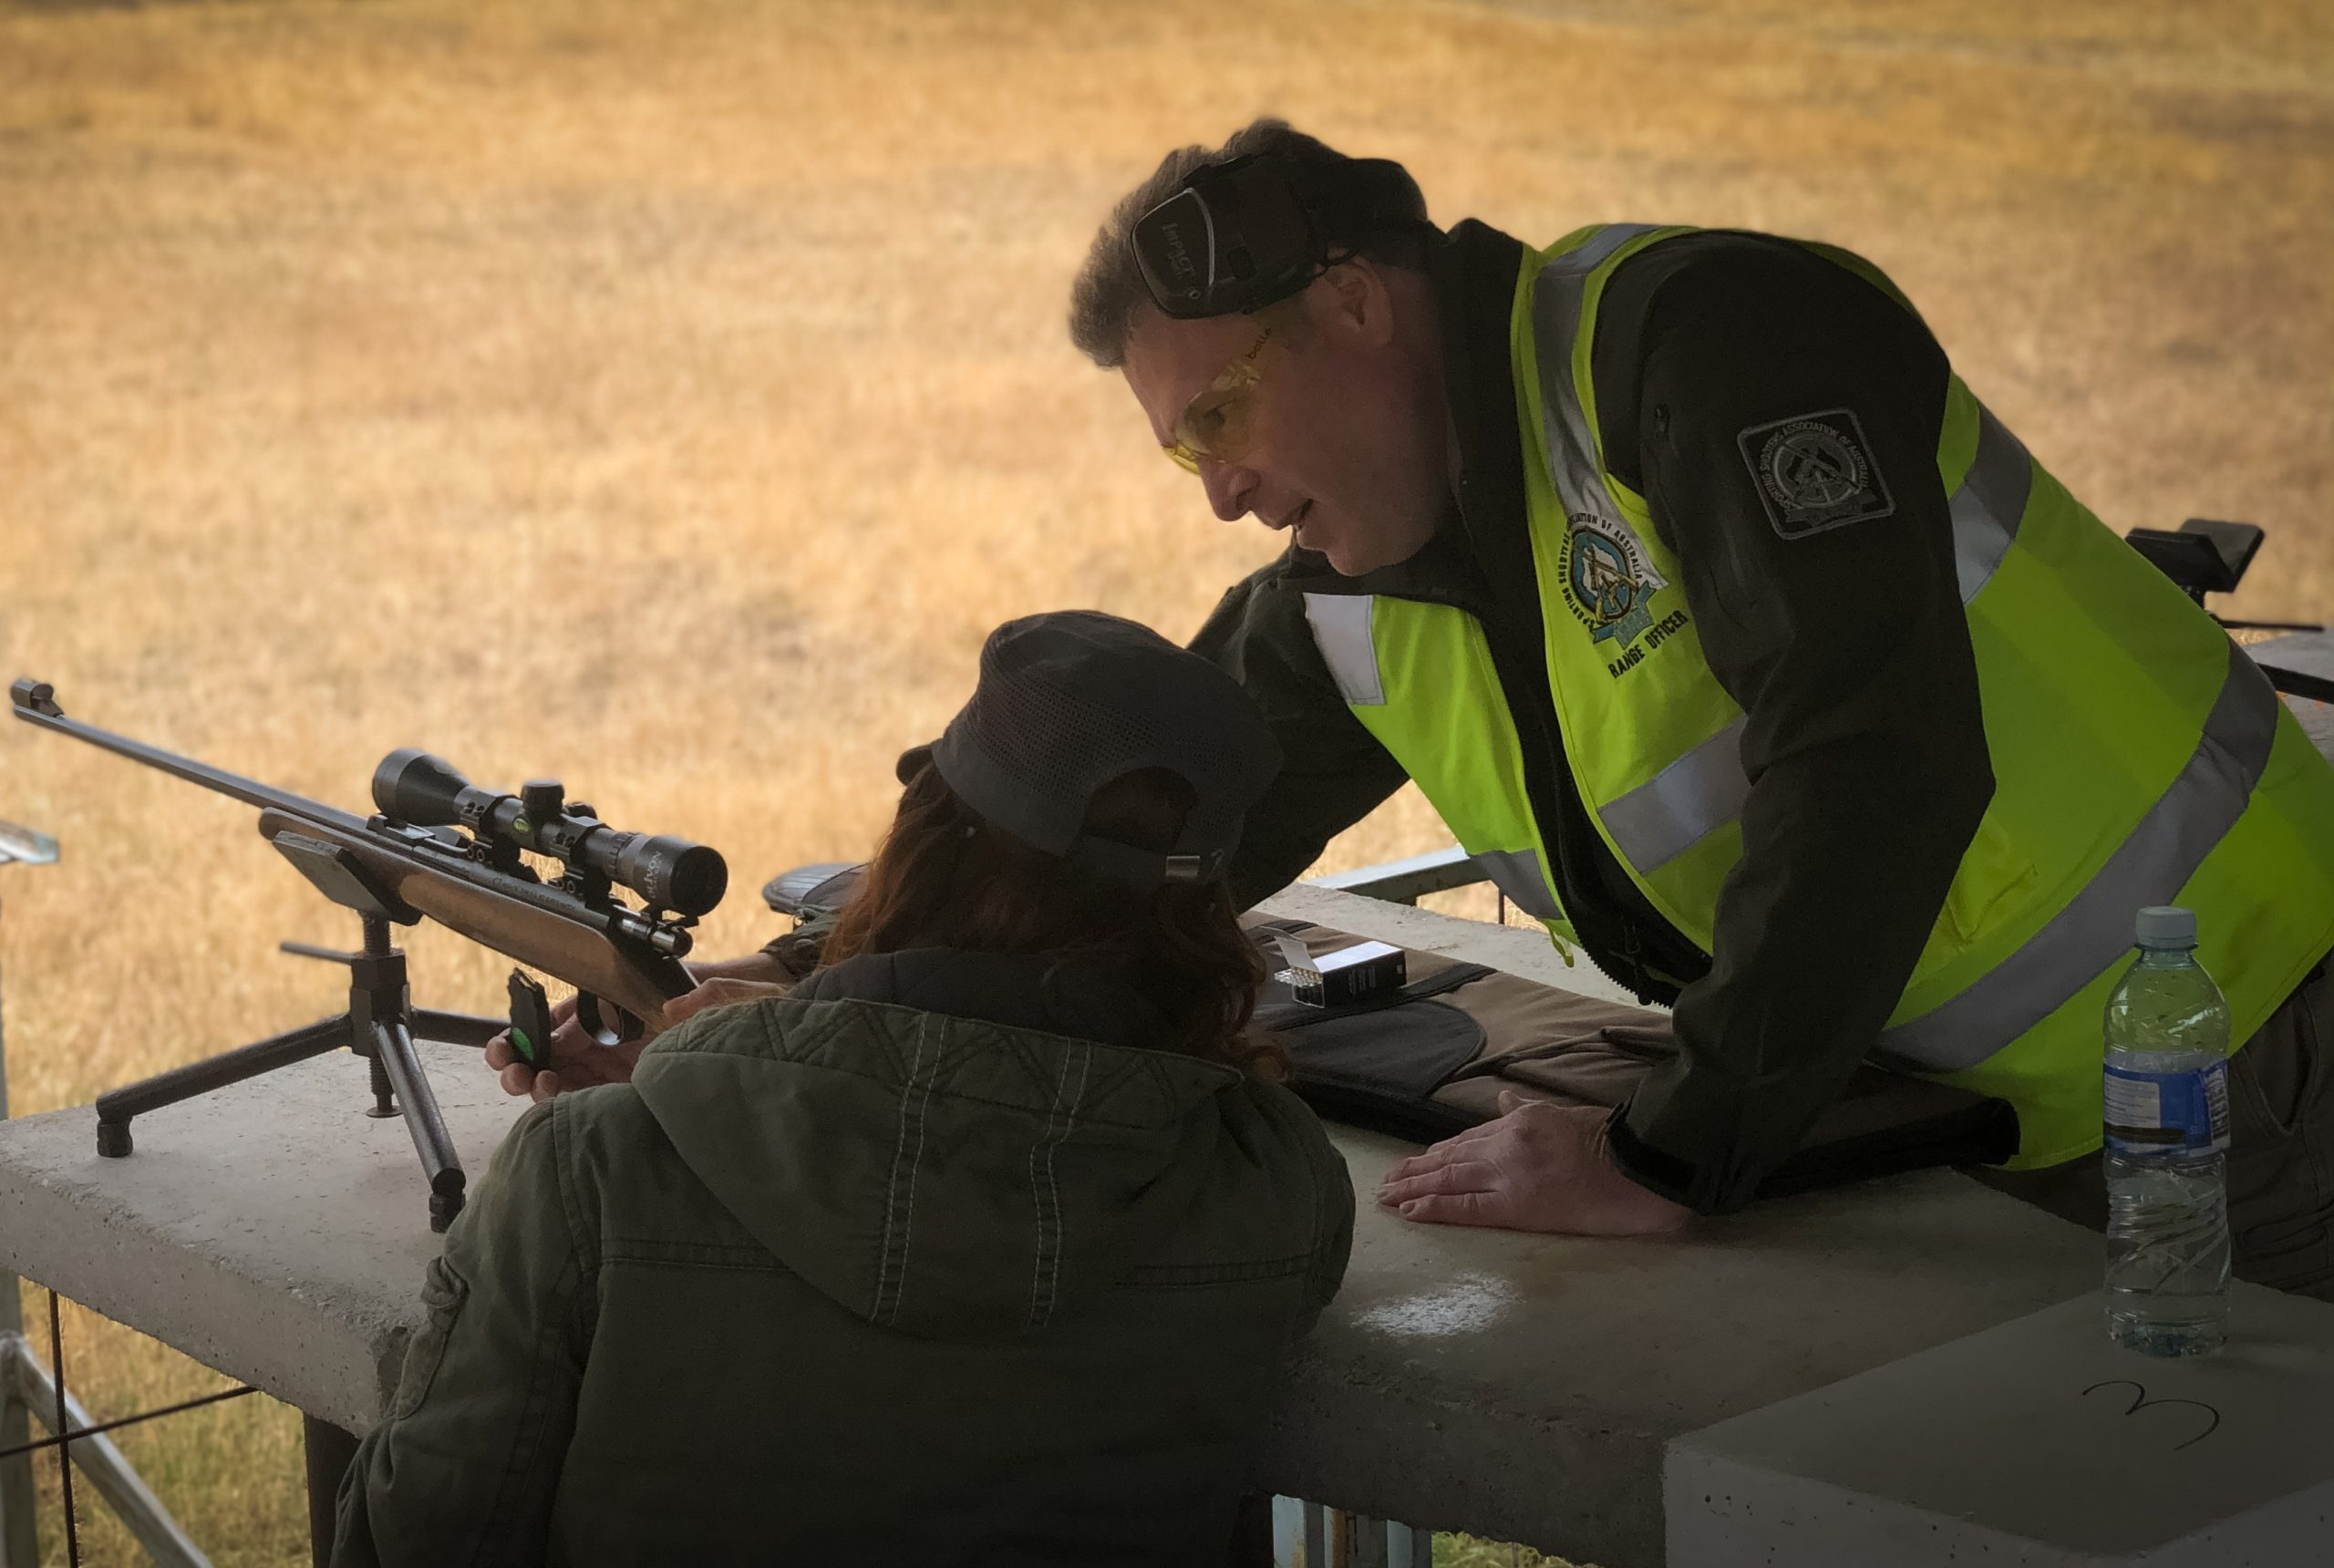 Practical Firearms Training Program: Introductory Course